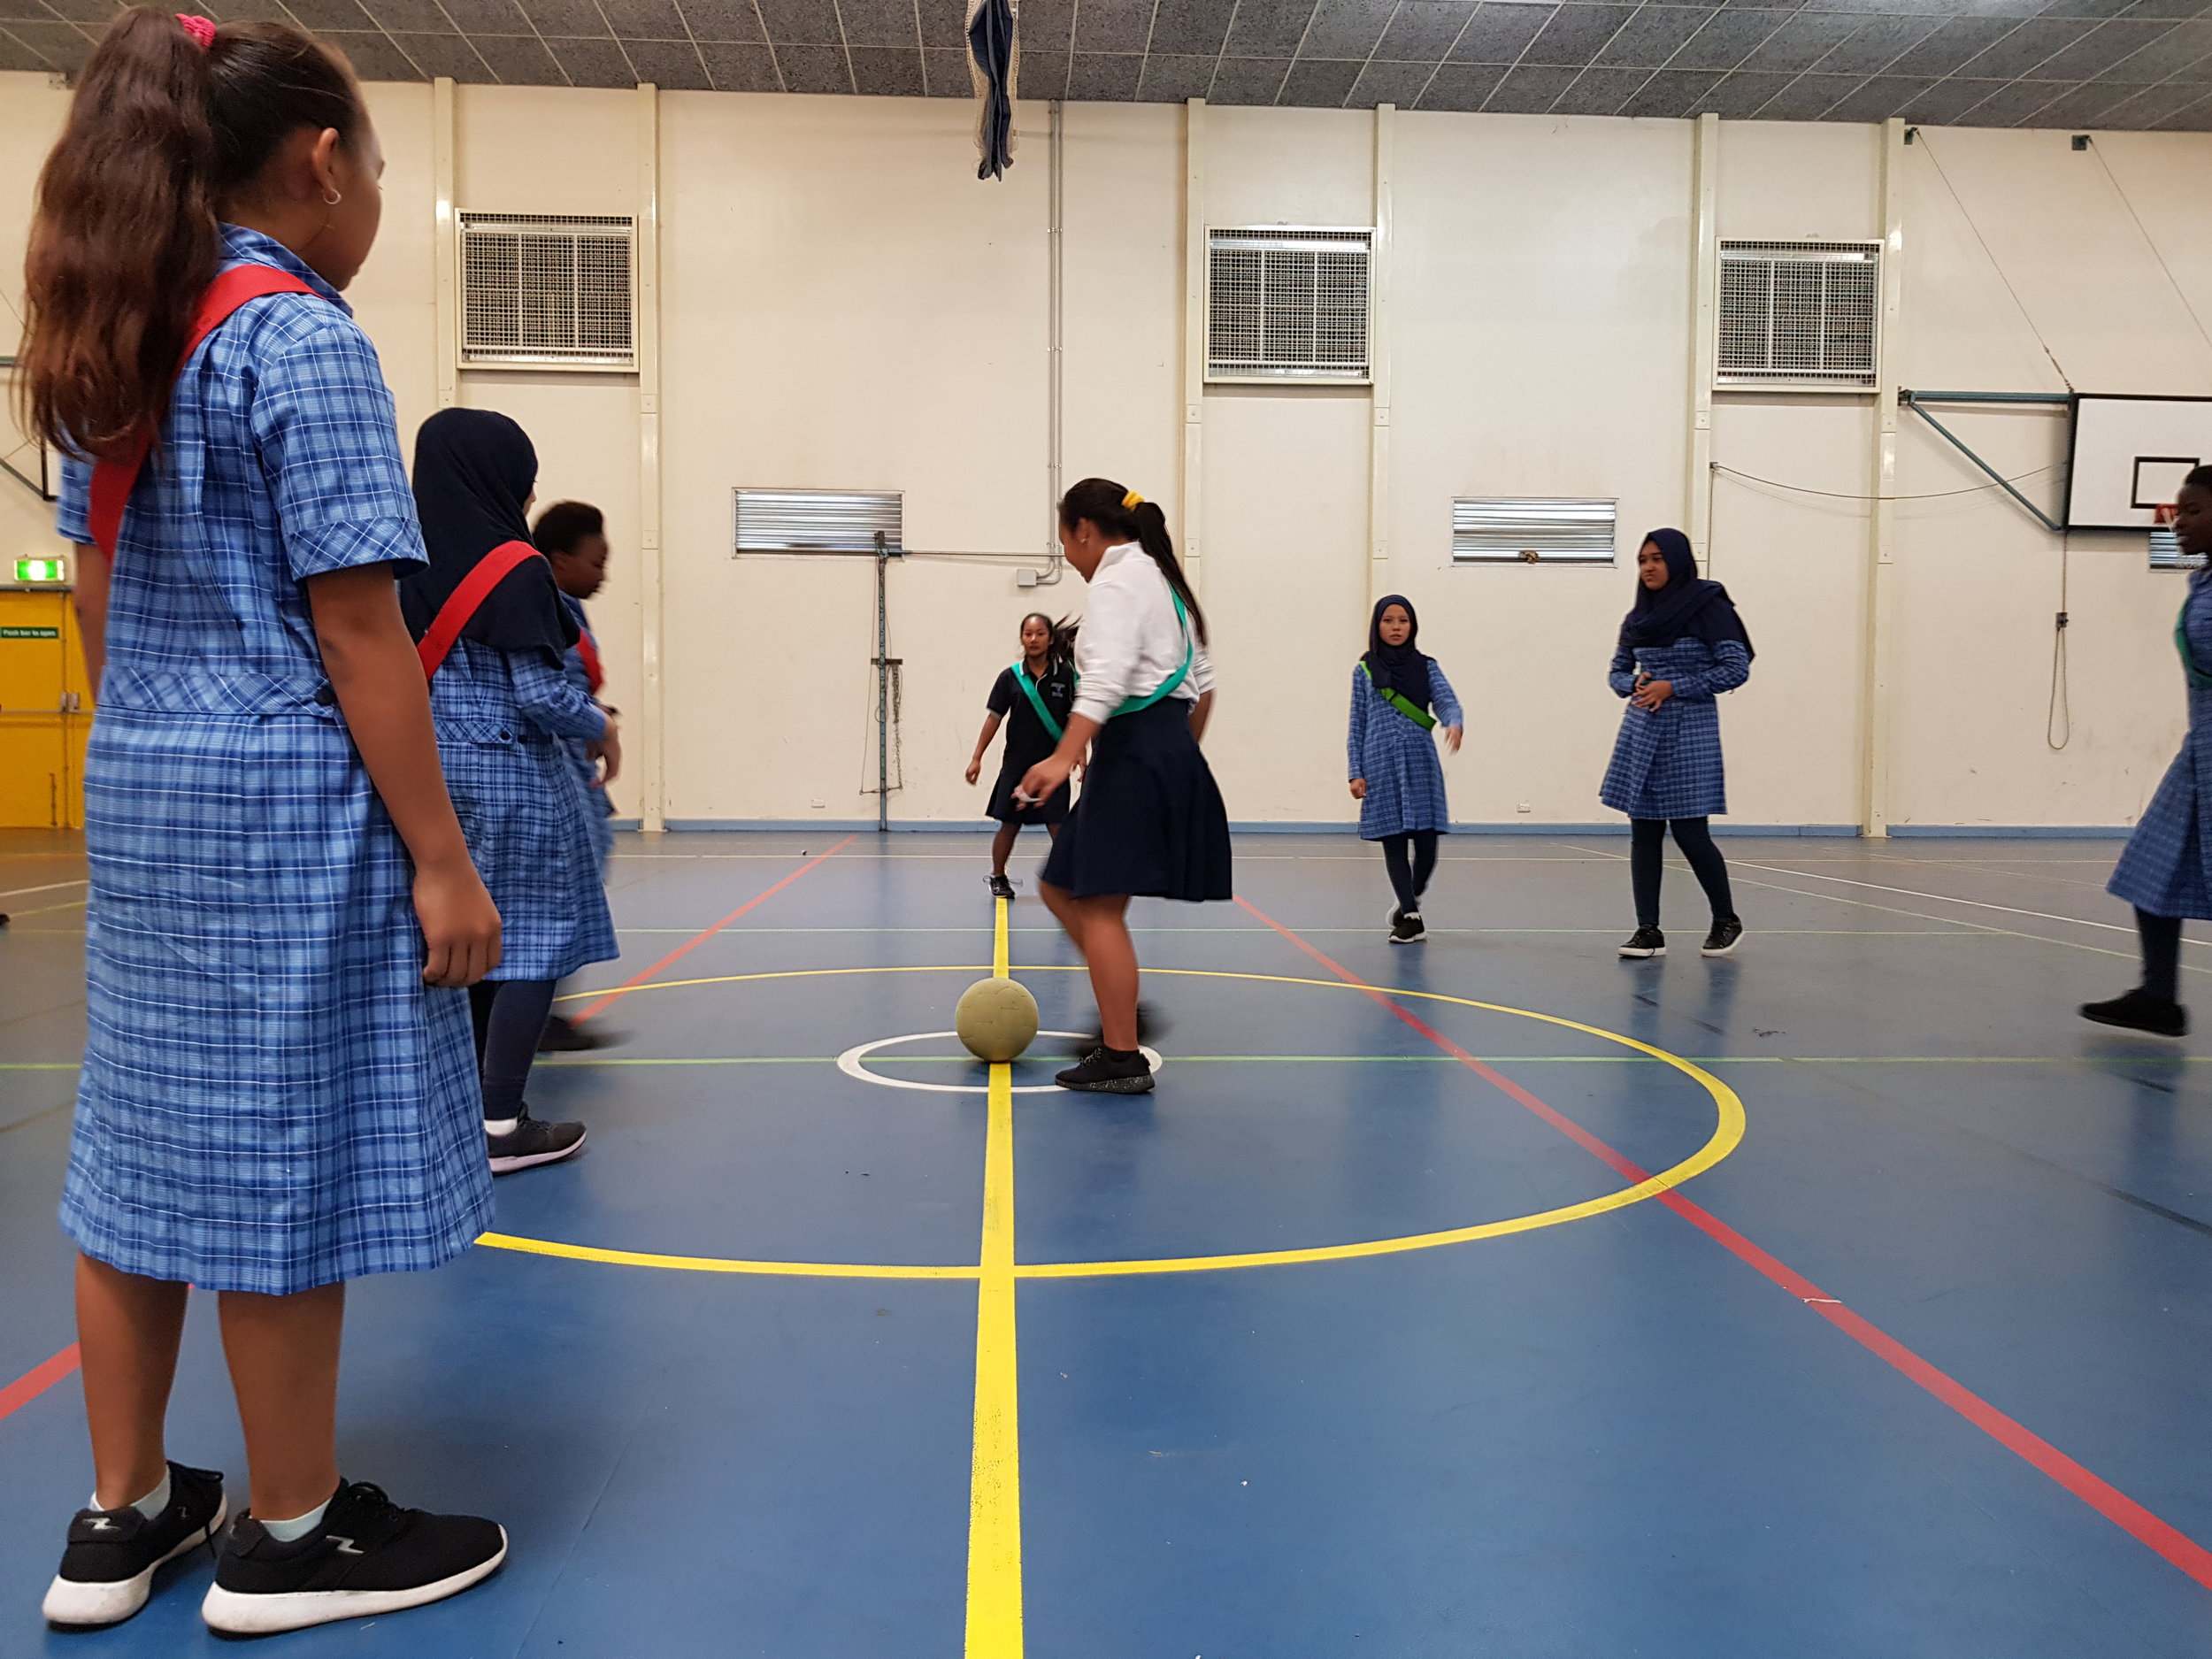 students playing soccer in the school gymnasium